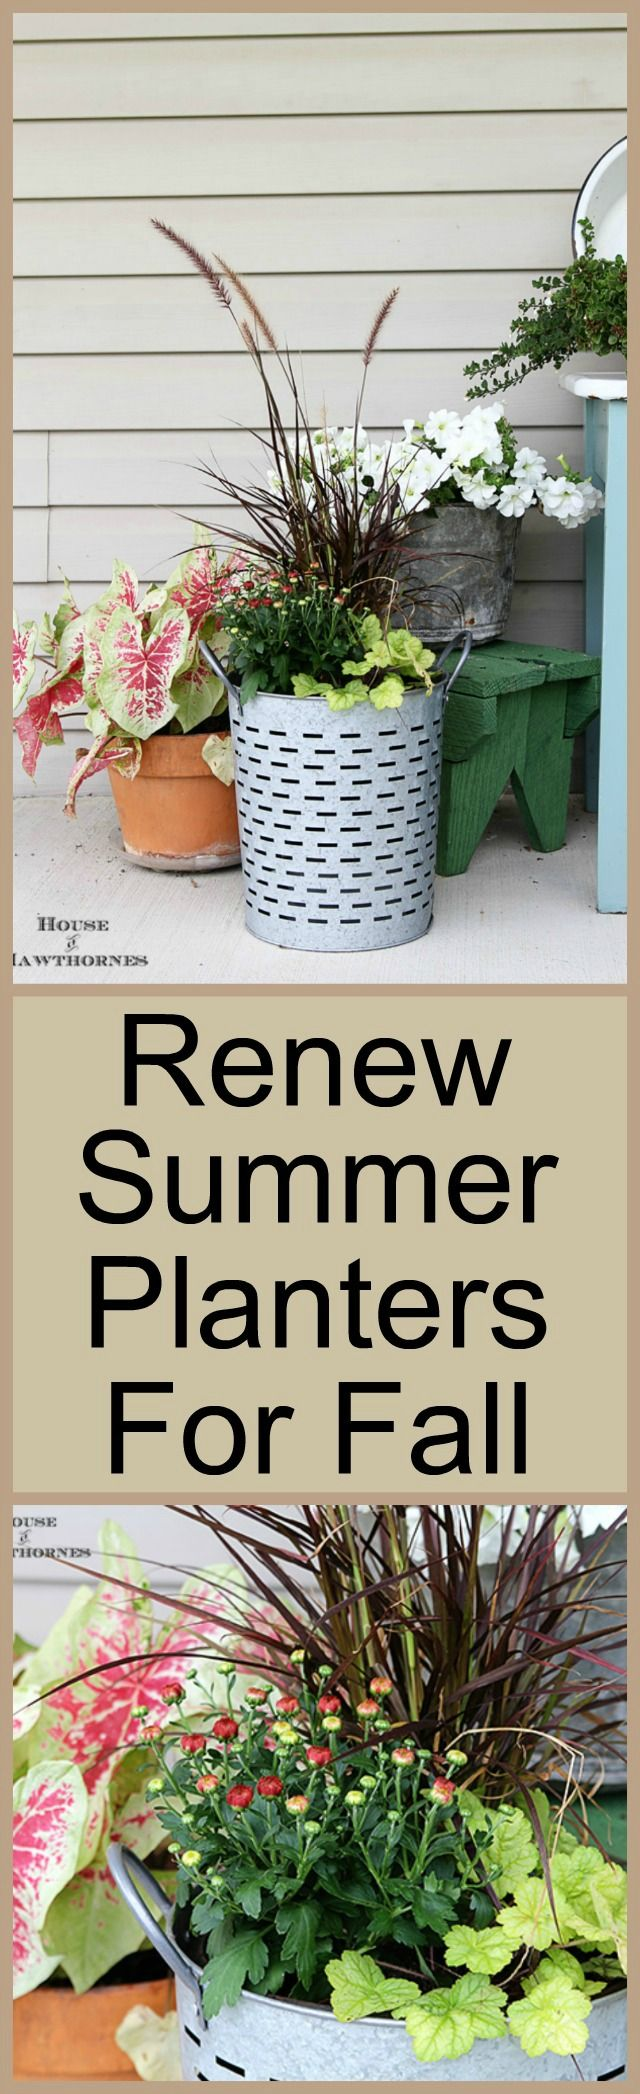 Adding Fall To A Summer Planter Fall ContainersFall Container PlantsContainer FlowersGardening